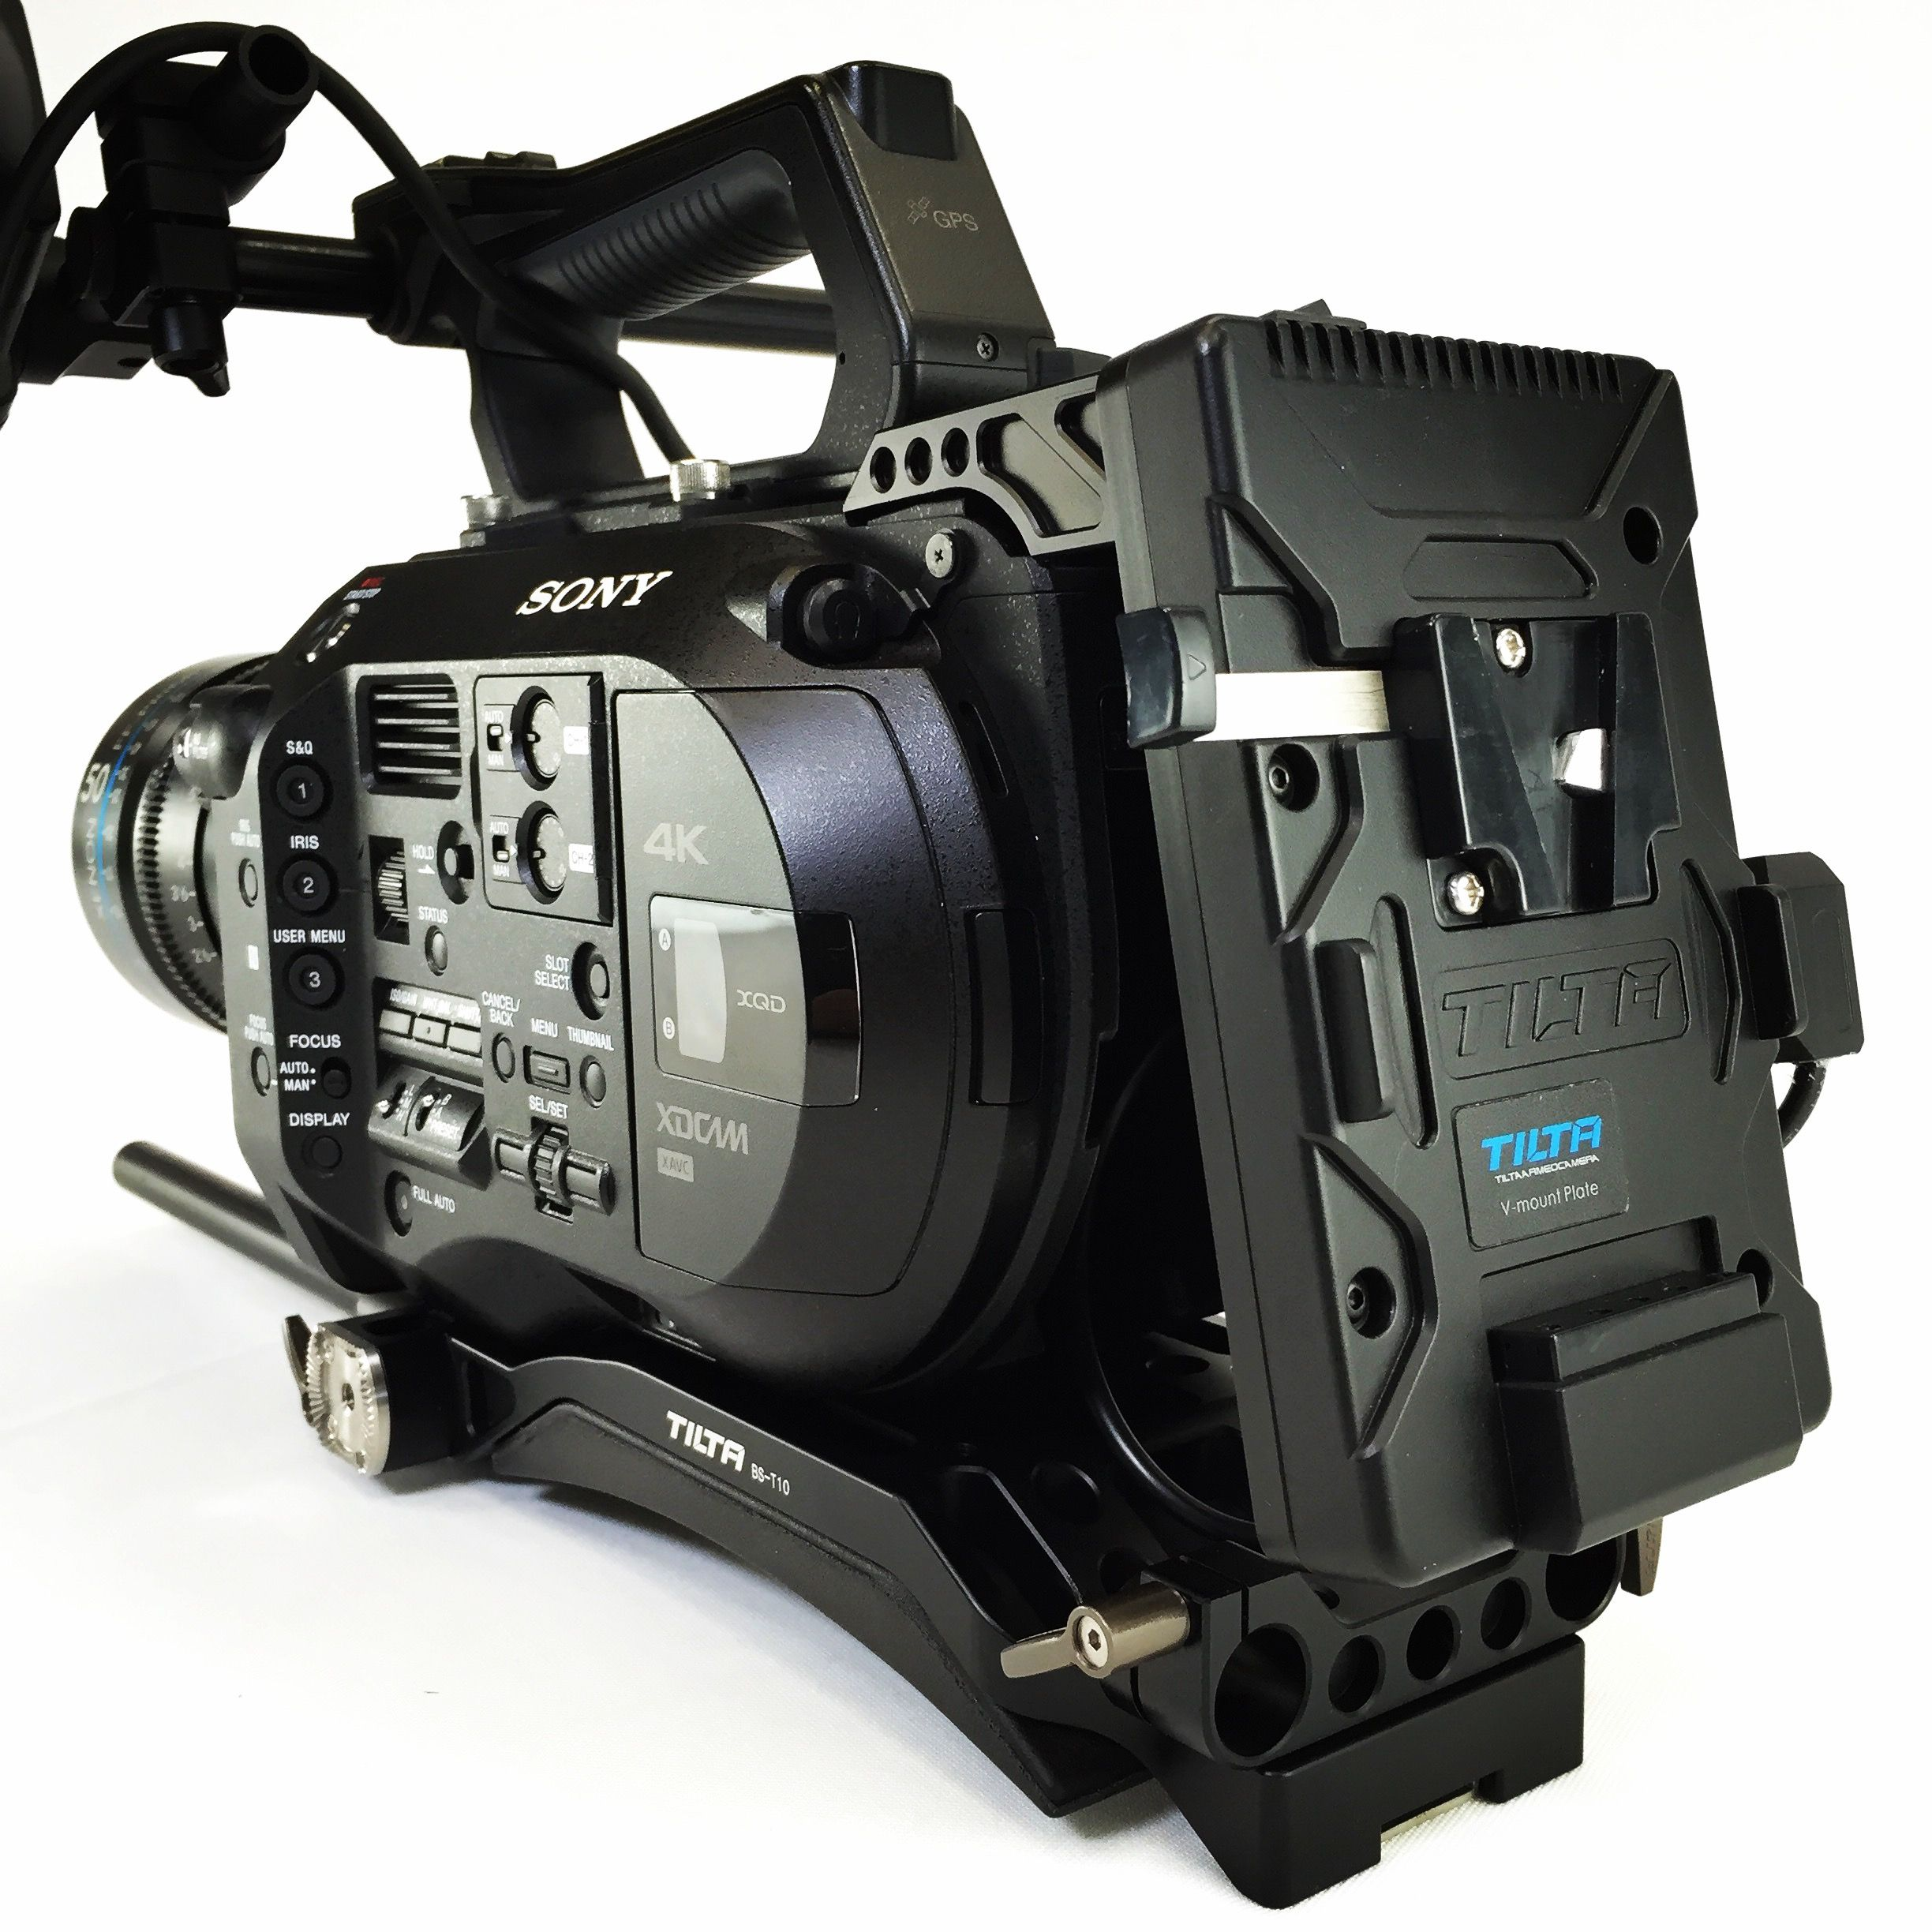 Sony FS7 with the Tilta FS-T01 V-Mount Battery Adapter Plate $259 & Tilta BS-T10 Baseplate $549 0% 12 Month Lease Financing Available on FS7 & FS7K Apply Online:  http://www.texasmediasystems.com/dll-leasing.php